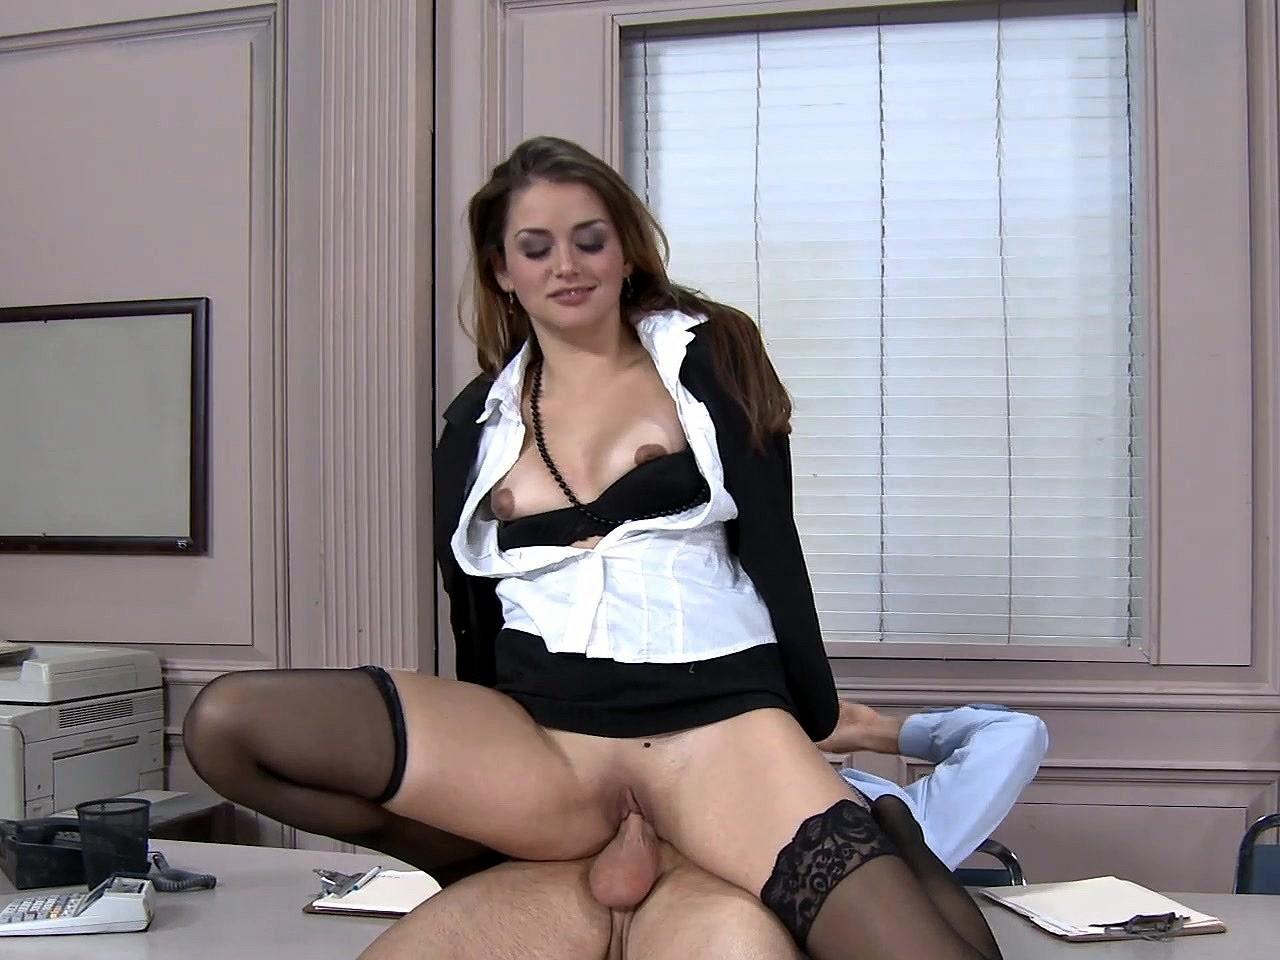 Interracial Secretary Porn Captions - secretary sucks captions